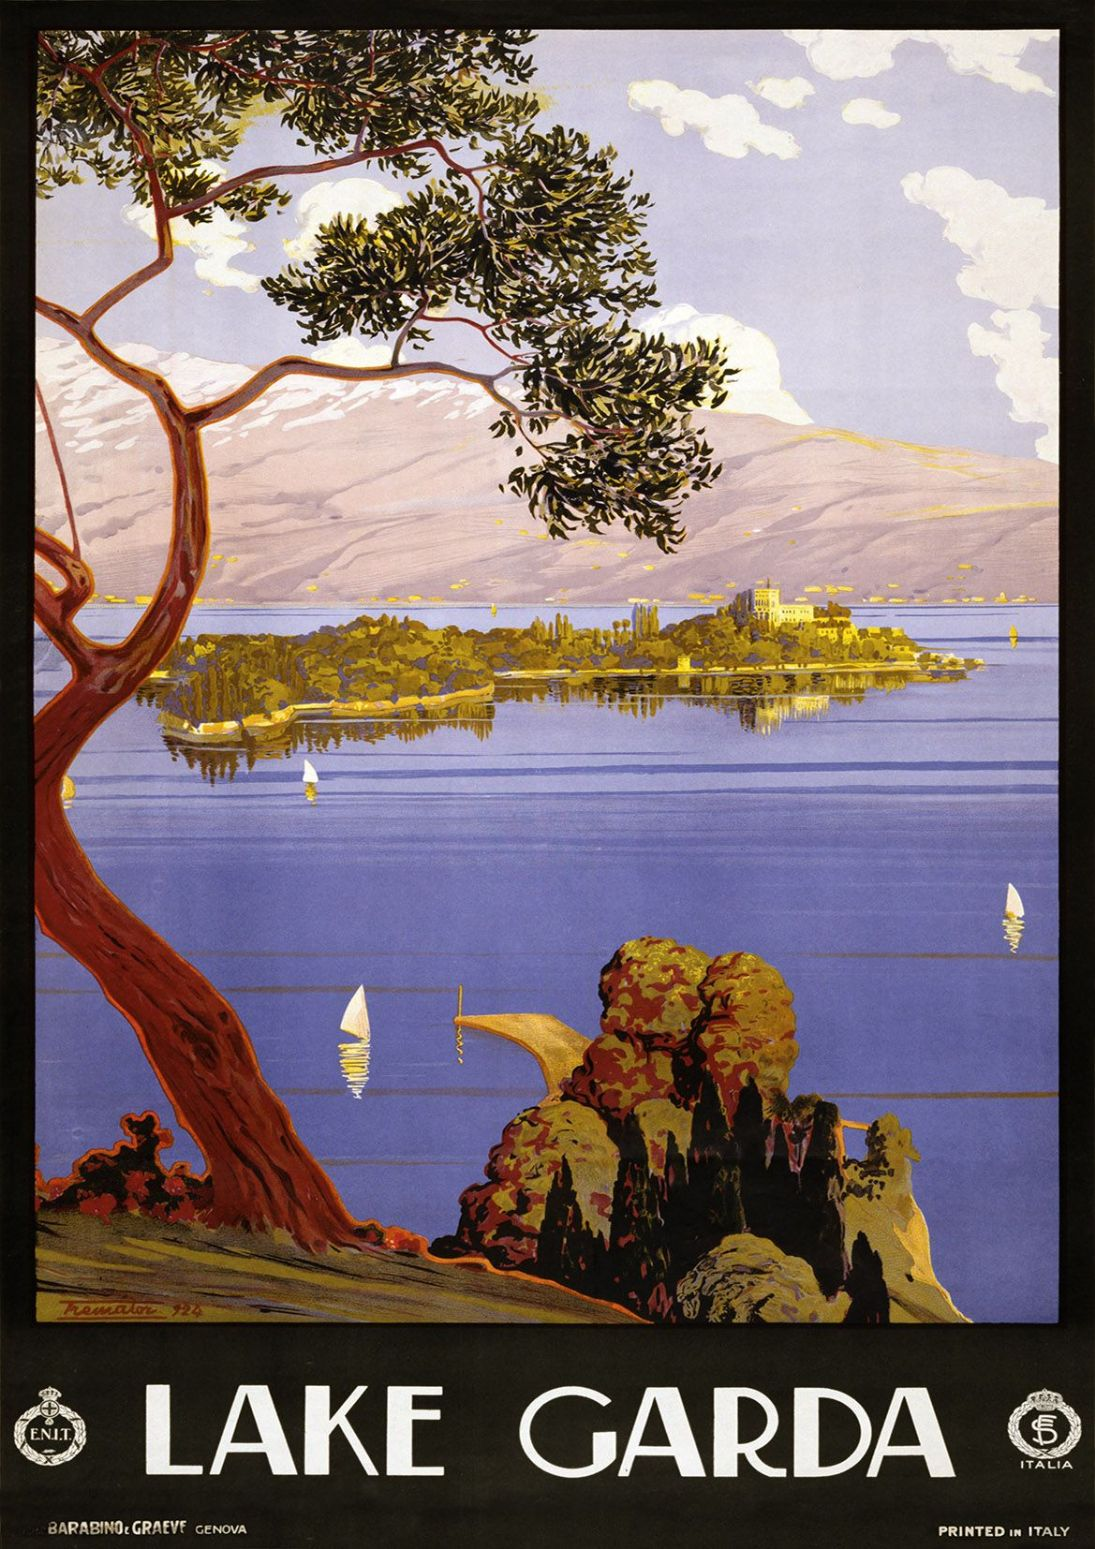 Vintage Italian Scenic Beautiful Travel Print Poster. Sizes A4 A3 A2 A1  003290